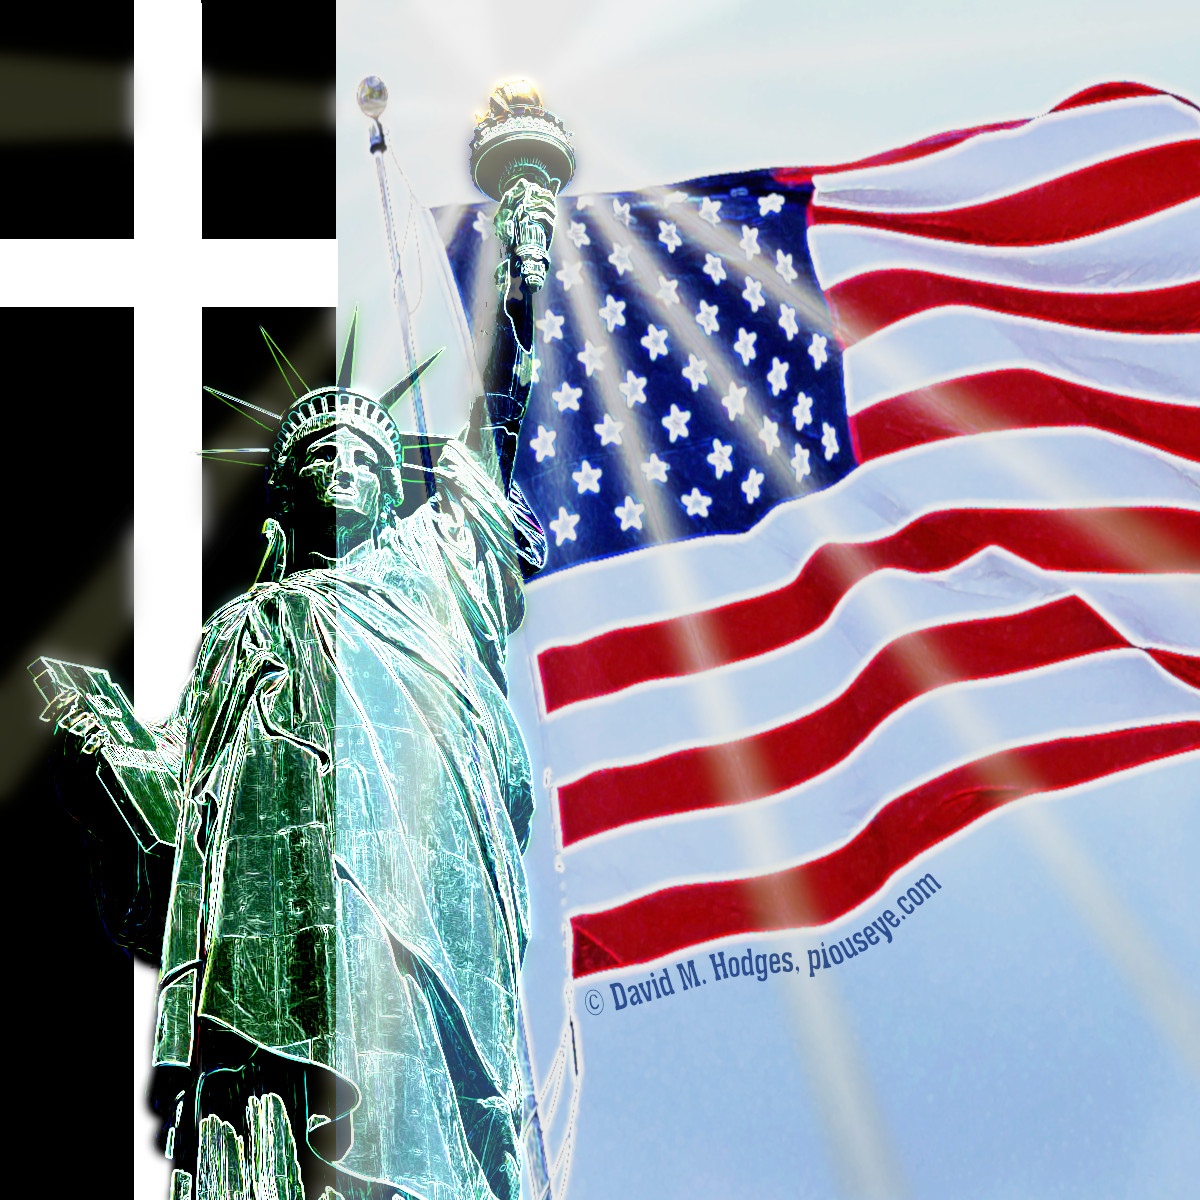 Concluding Political Postscript to 2020: My Christian Nationalist Libertarian Platform